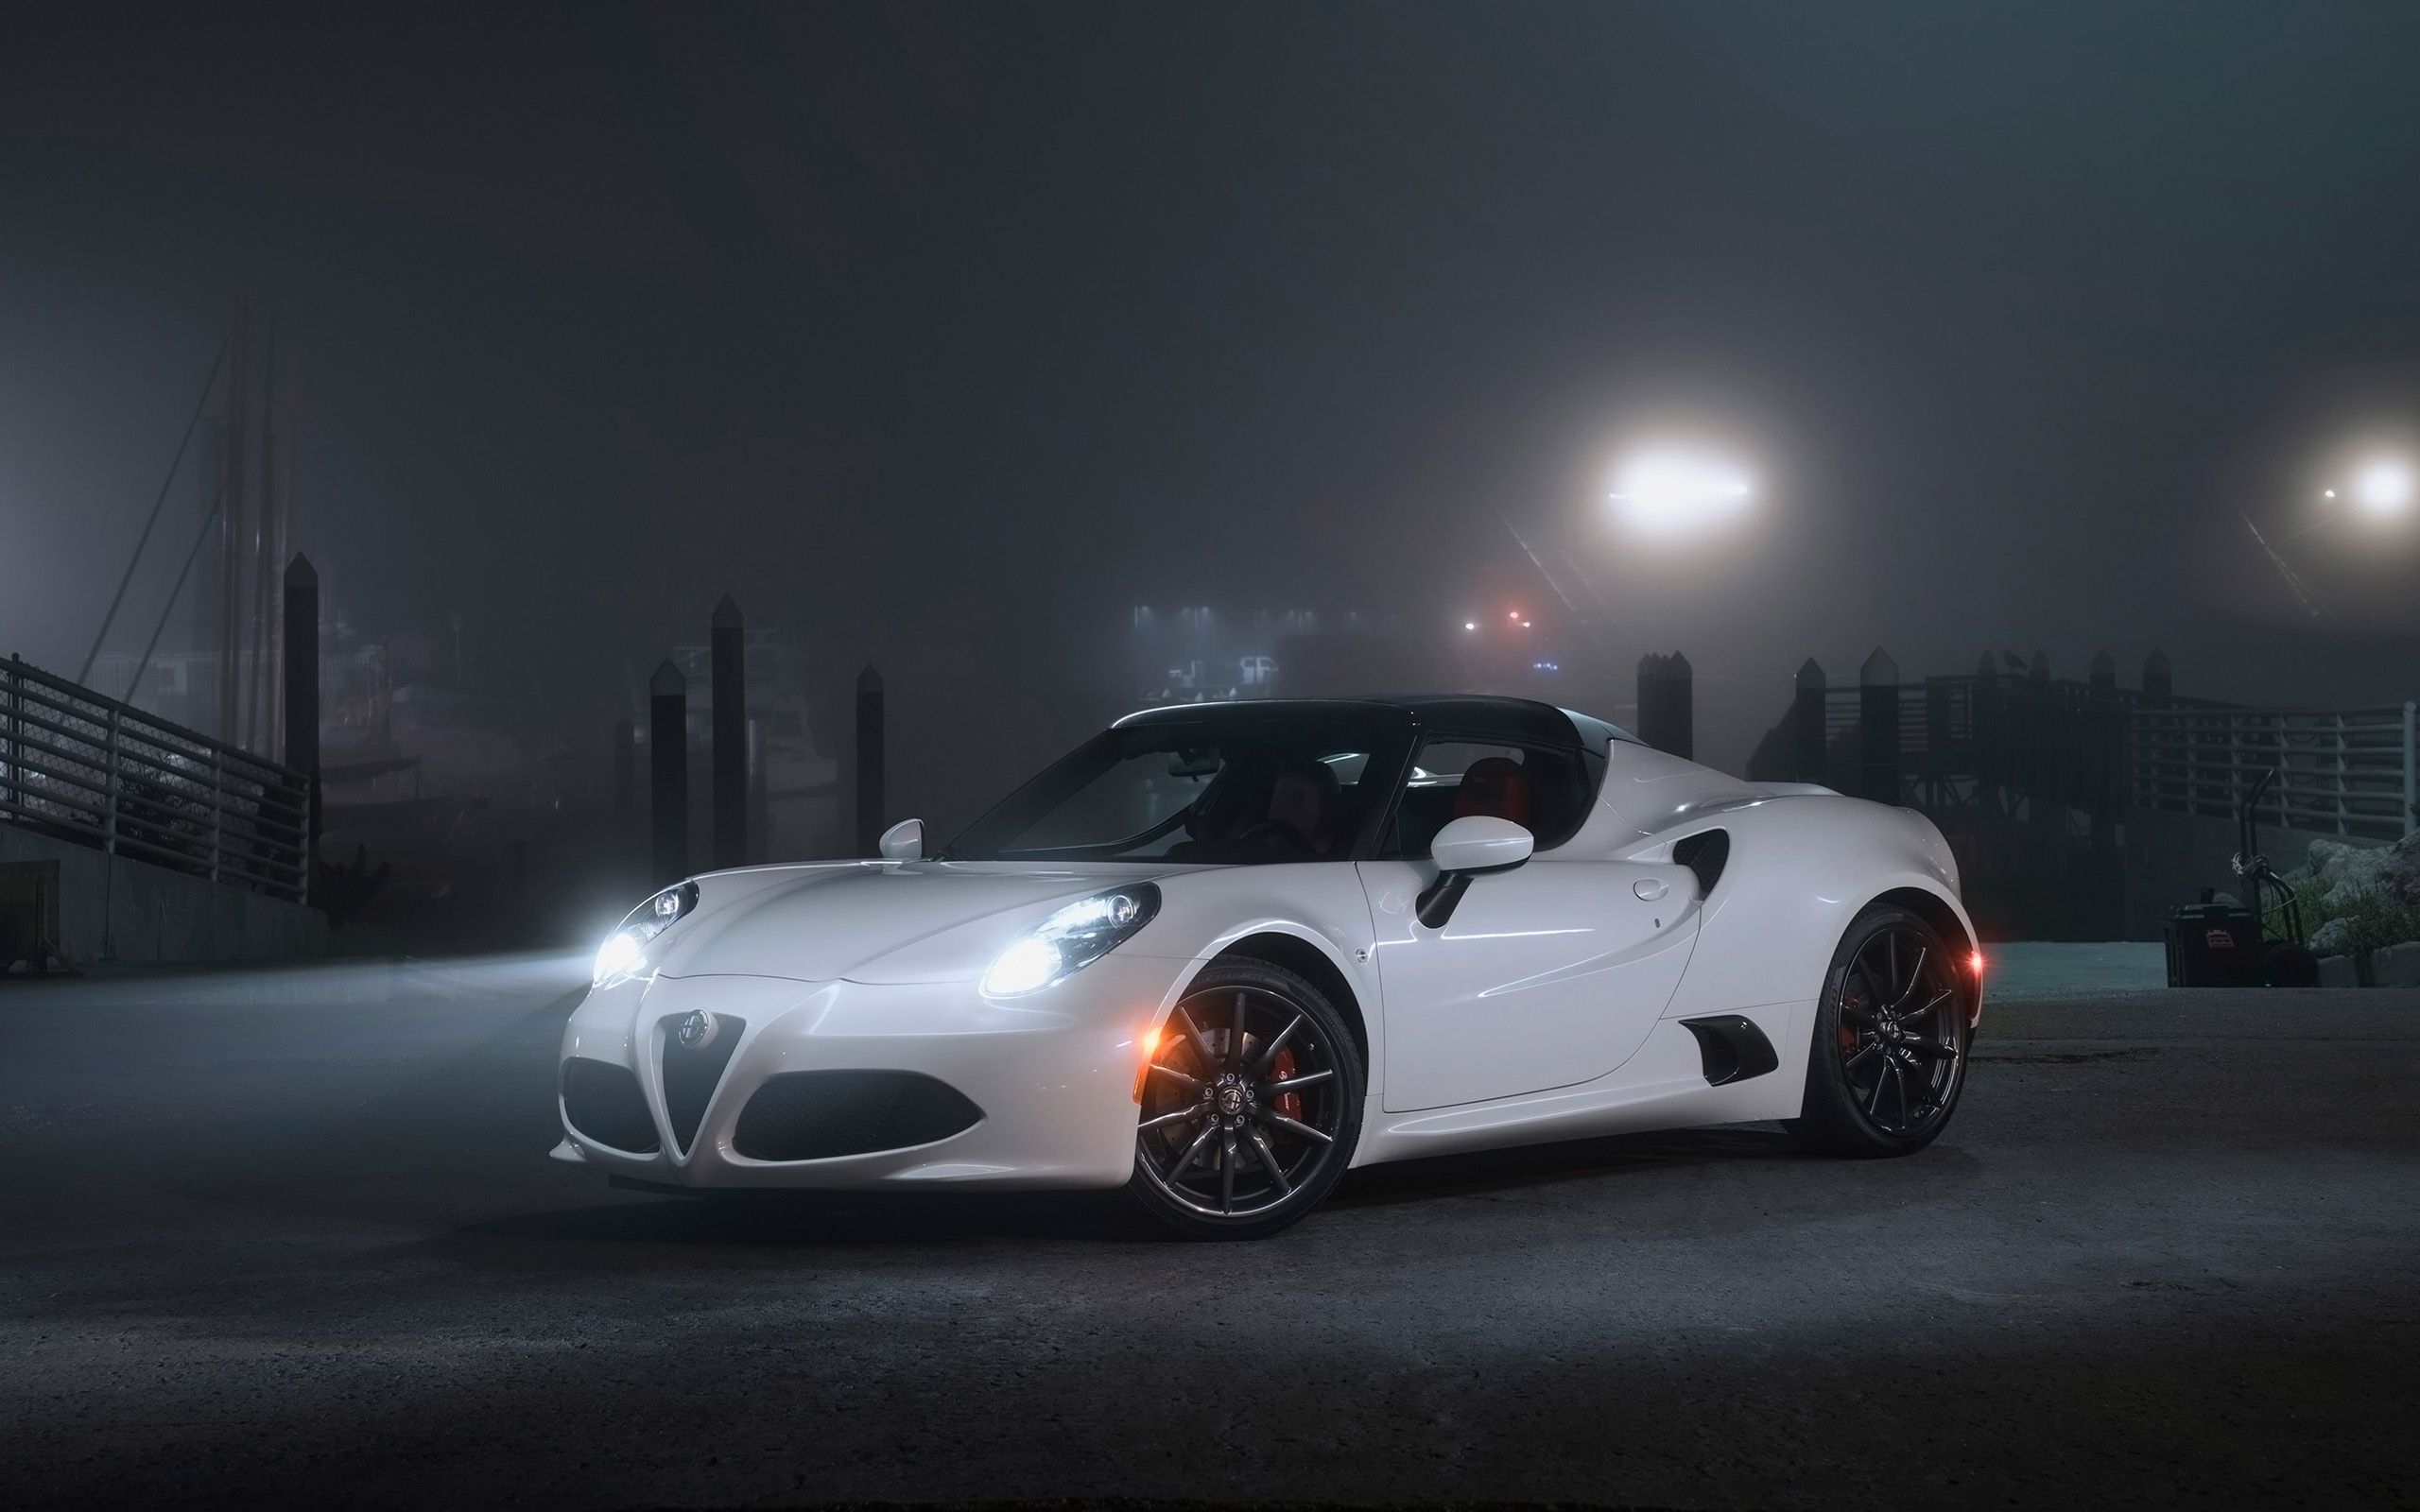 Alfa Romeo Wallpapers HD Photos, Wallpapers and other Image